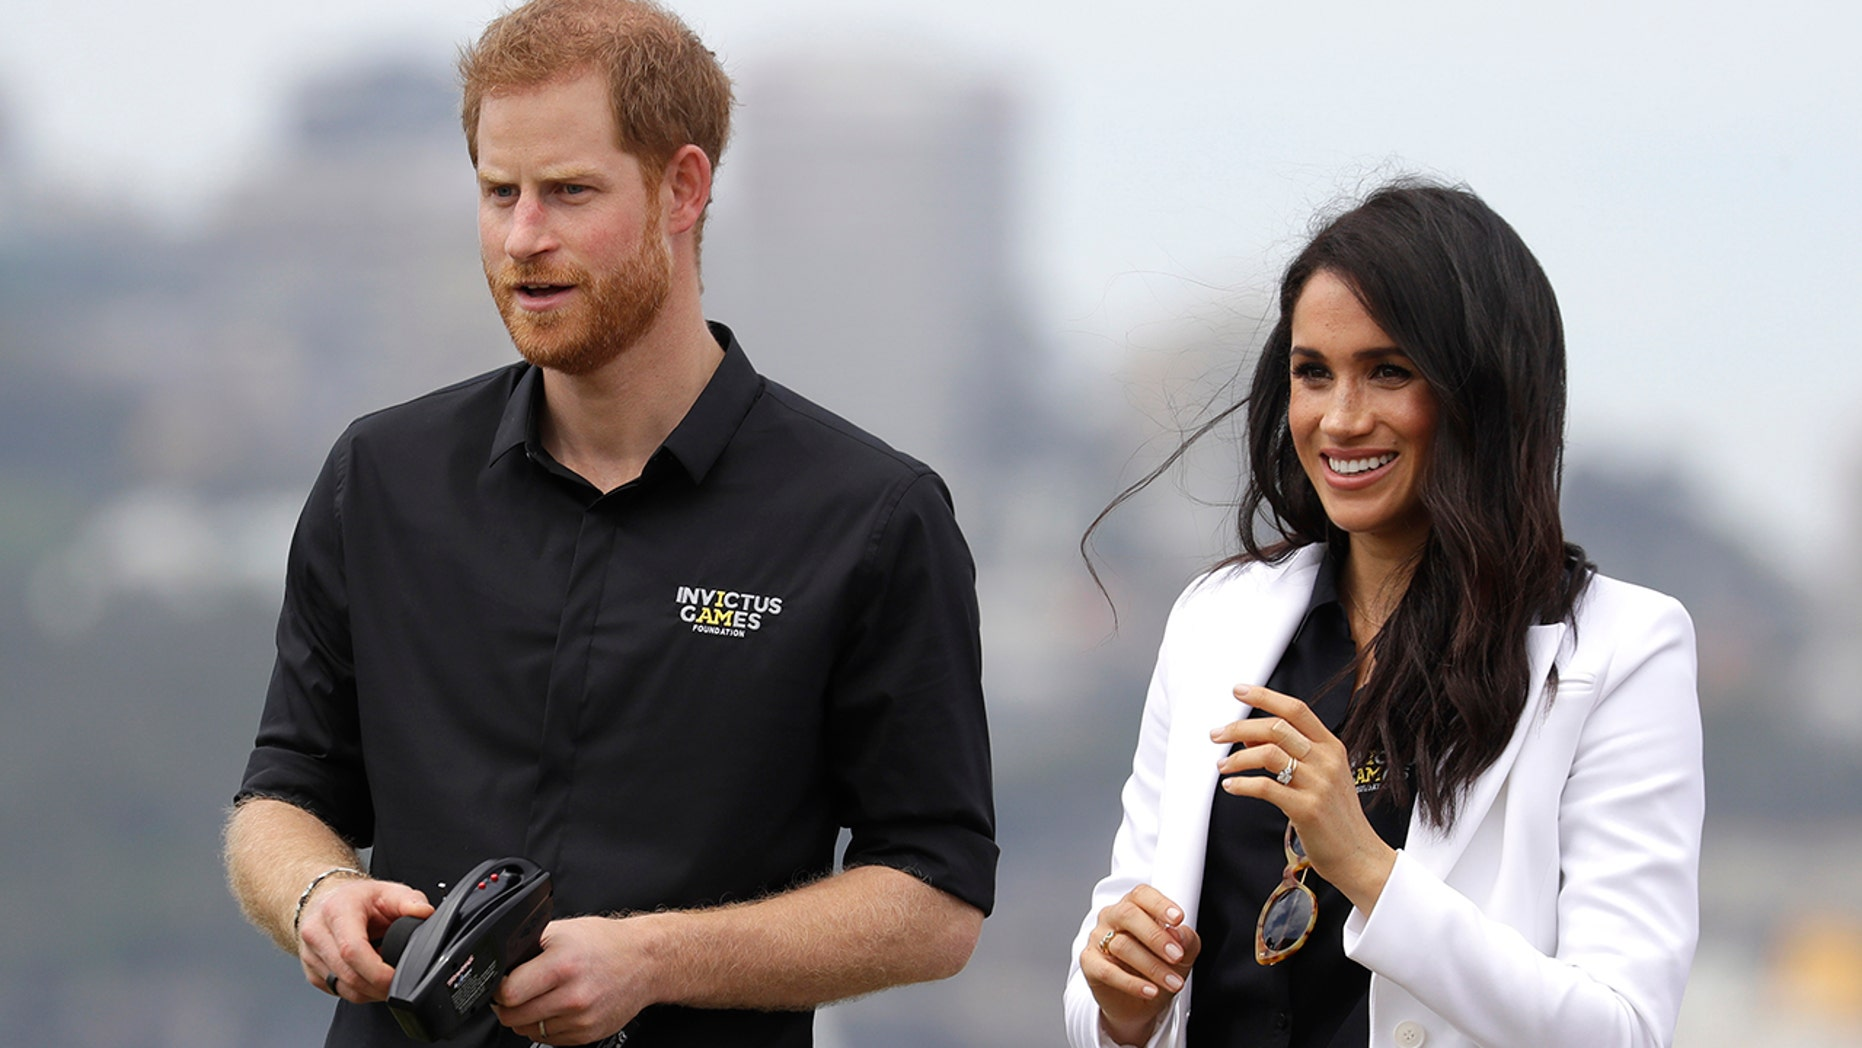 Thomas Markle 'filled with love' for pregnant daughter Meghan, Duchess Of Sussex